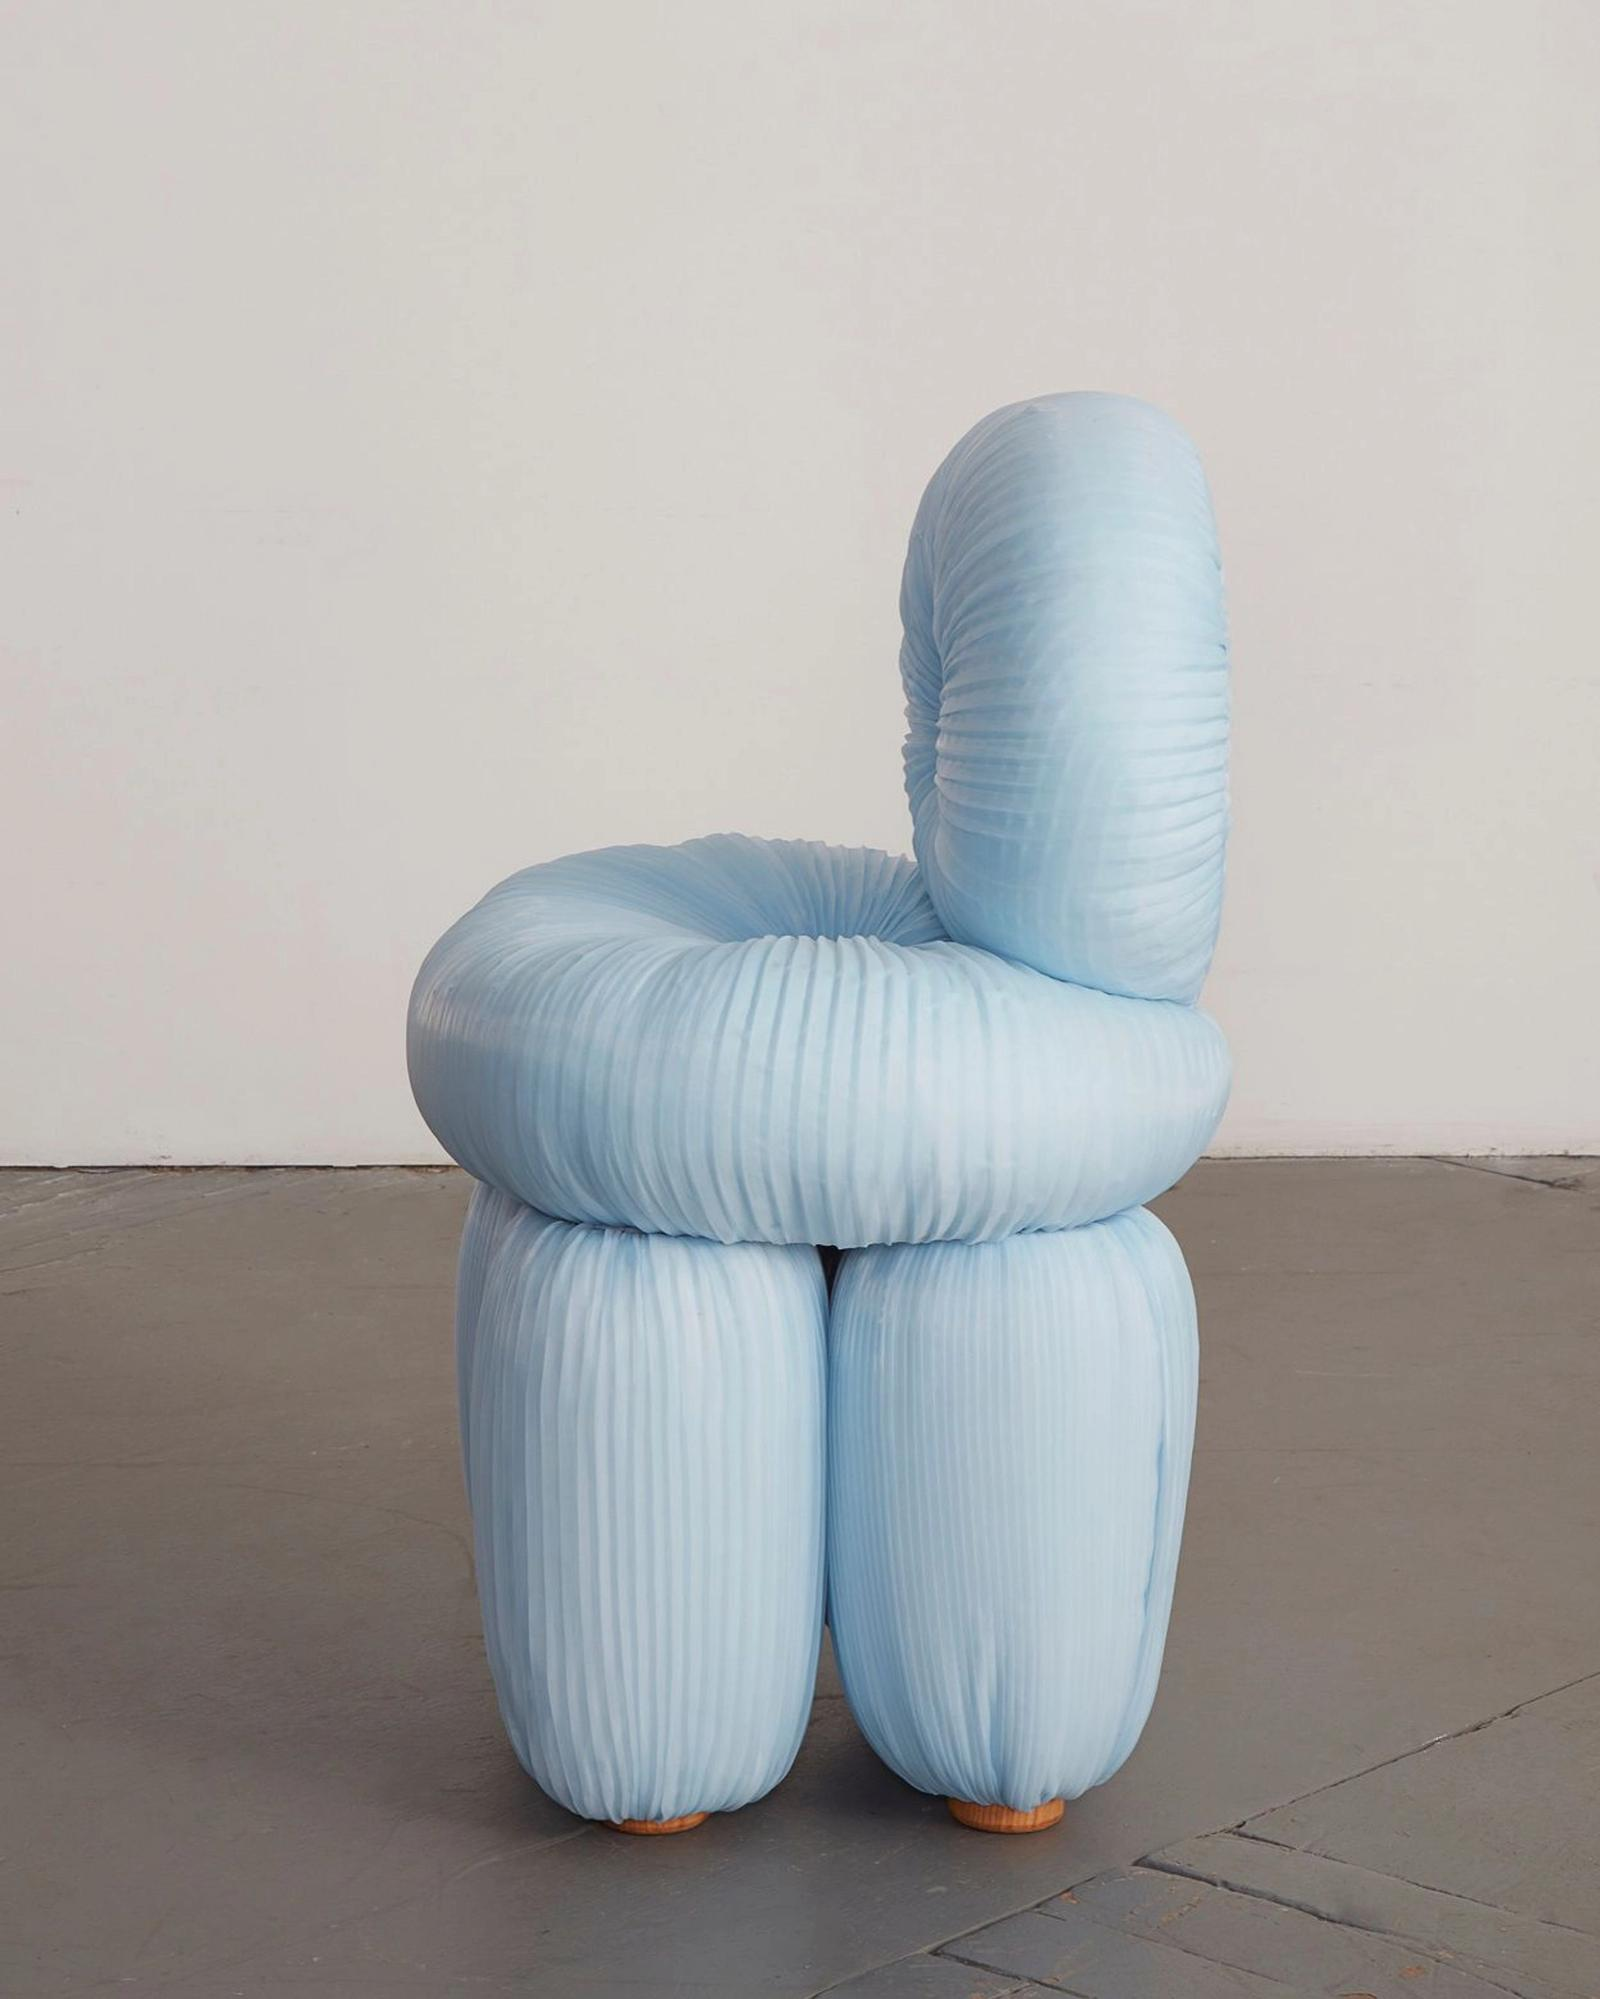 Aengus Chair, Chairs Beyond Right & Wrong, R & Co., NYC 2019. Image Courtesy of the Artist.